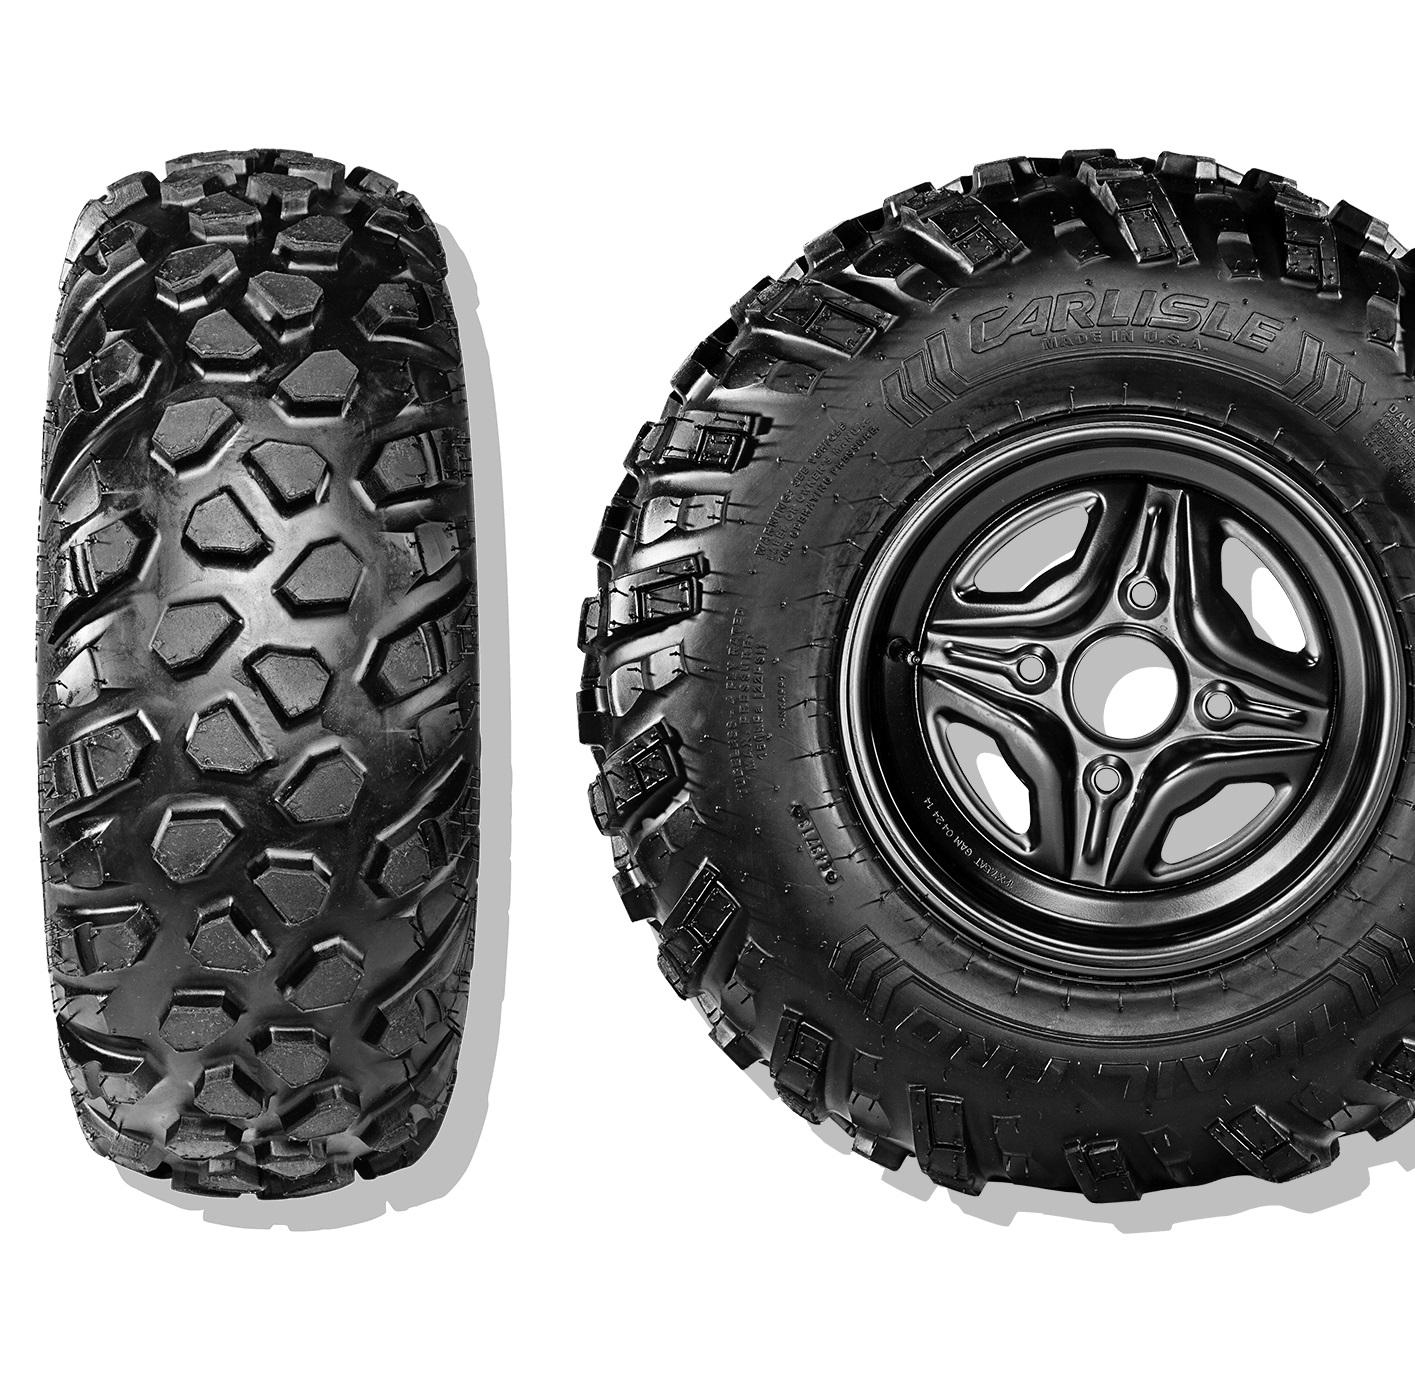 Carlisle Trail Pro ATV Tire - 26X900-12 LRB/4 ply (Wheel Not Included)